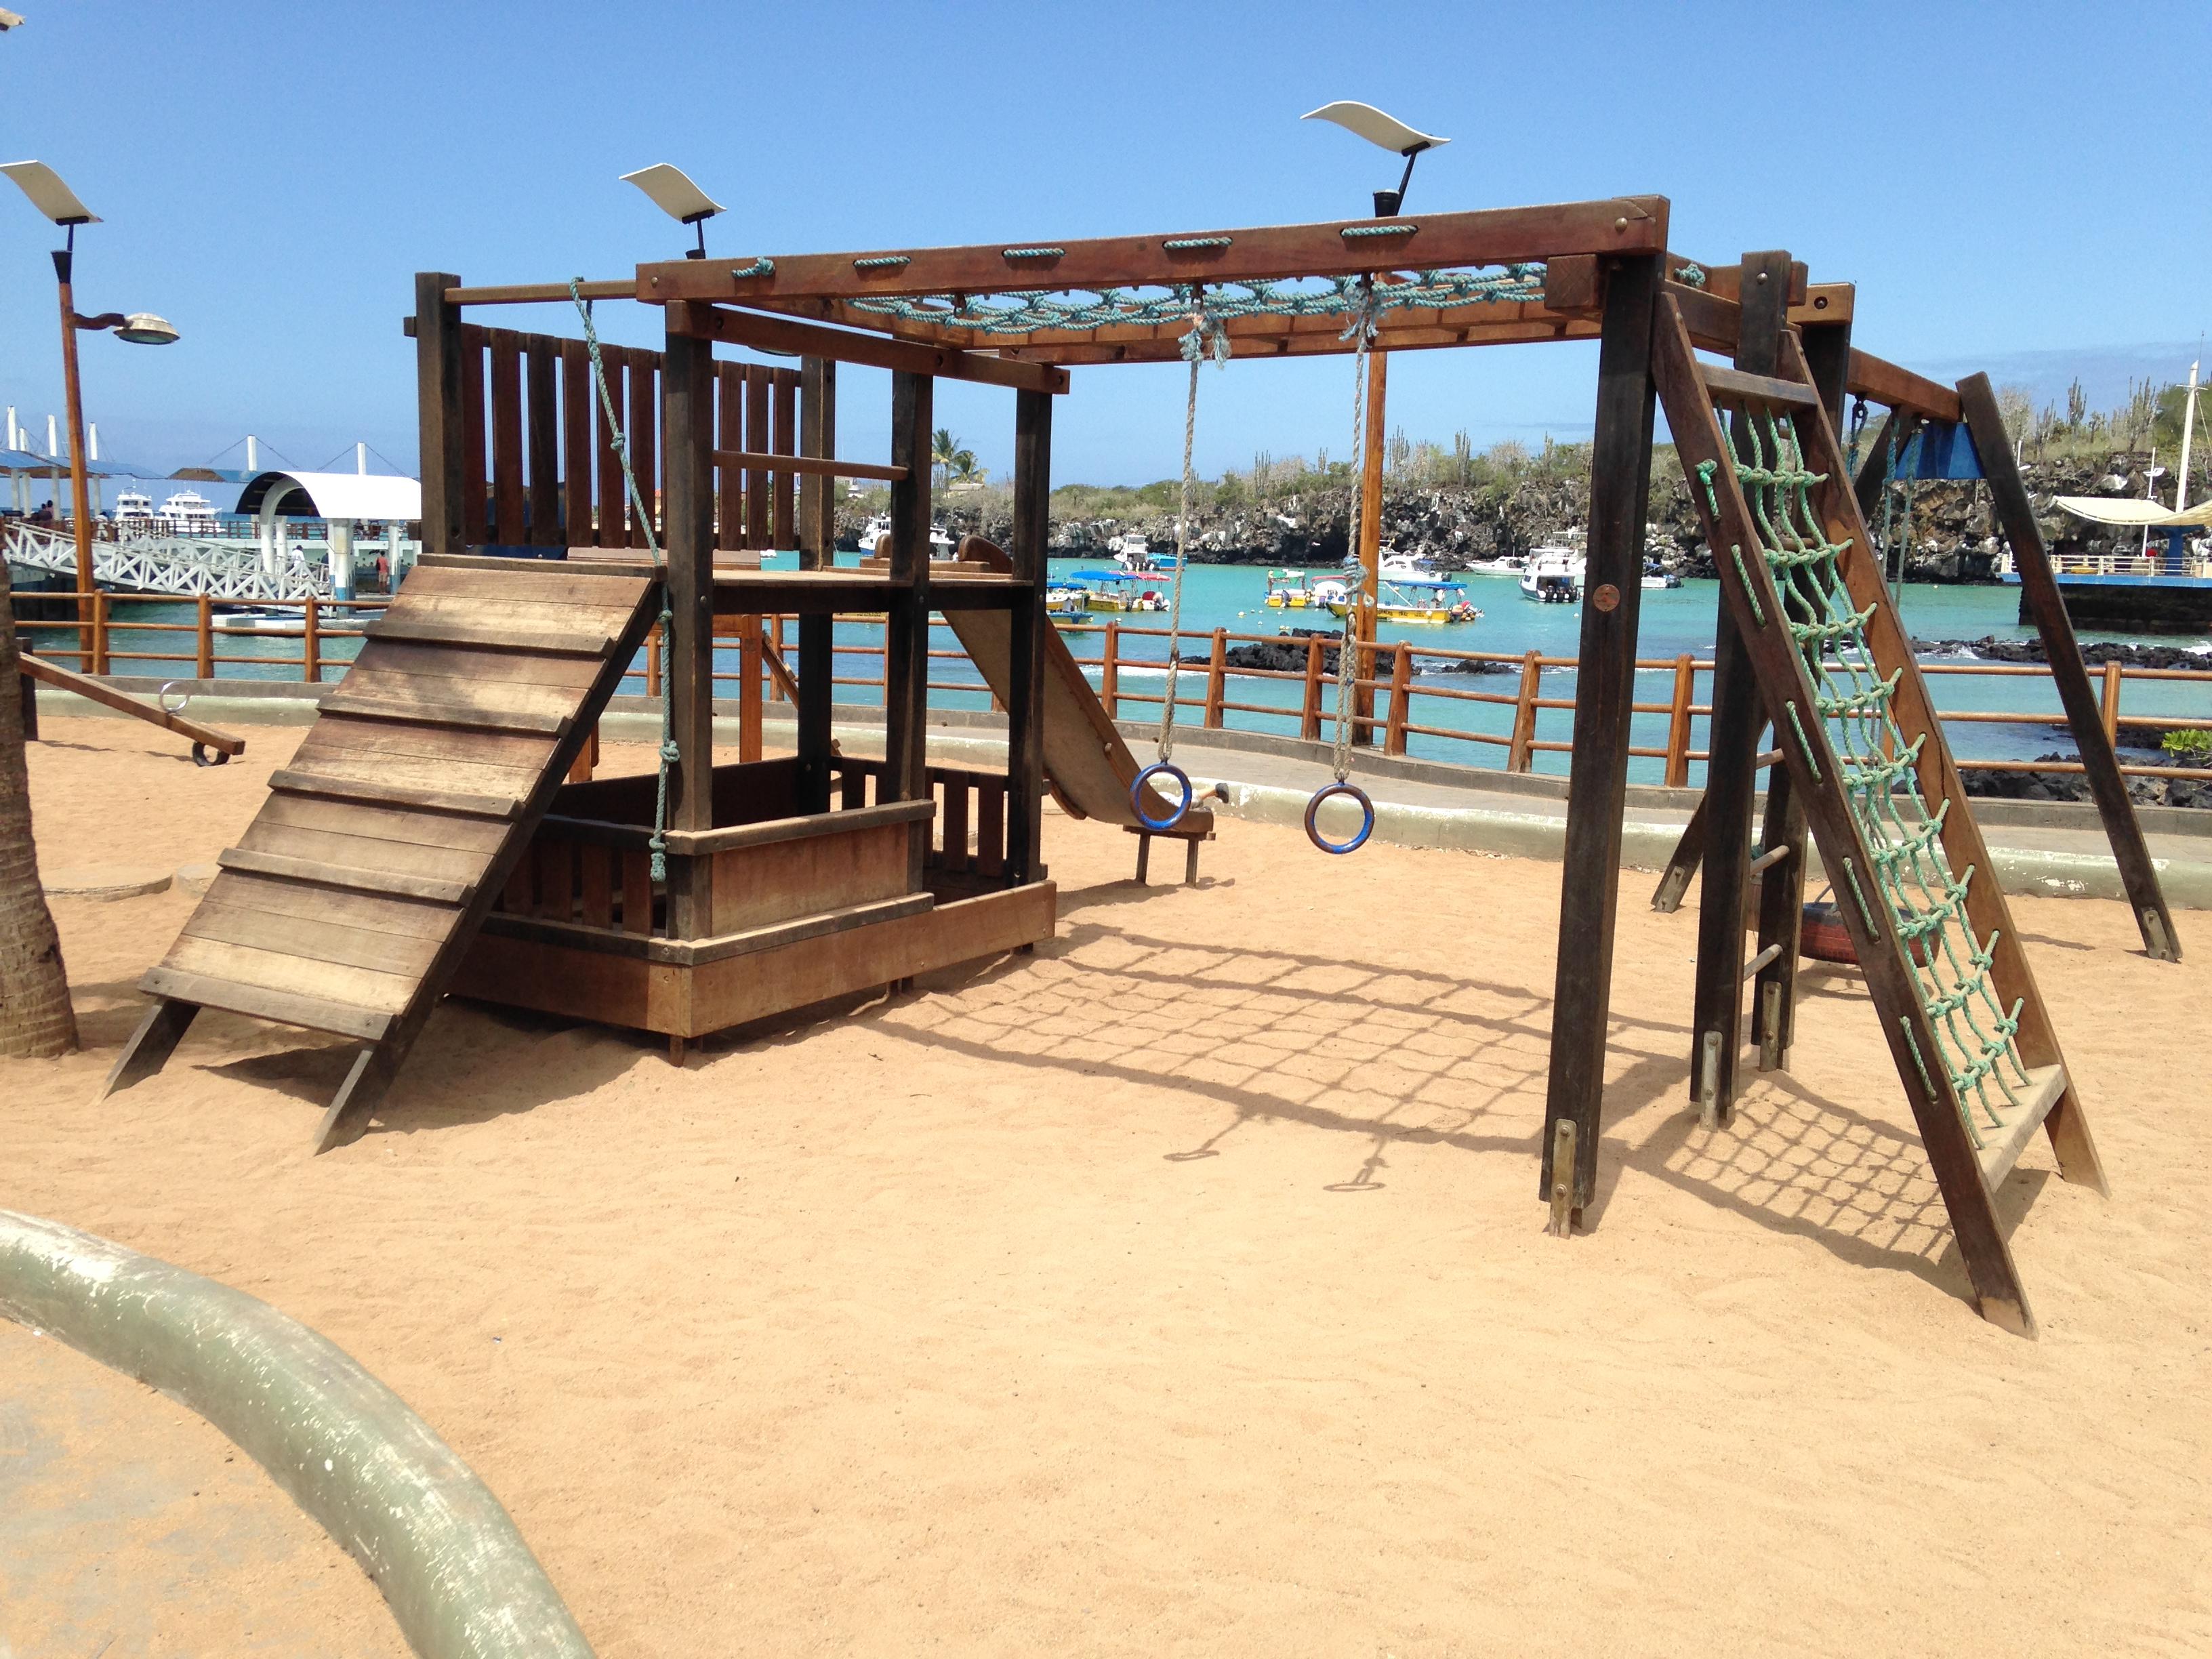 Outdoor Playground Equipment Made Of Wood Tired Road Warrior